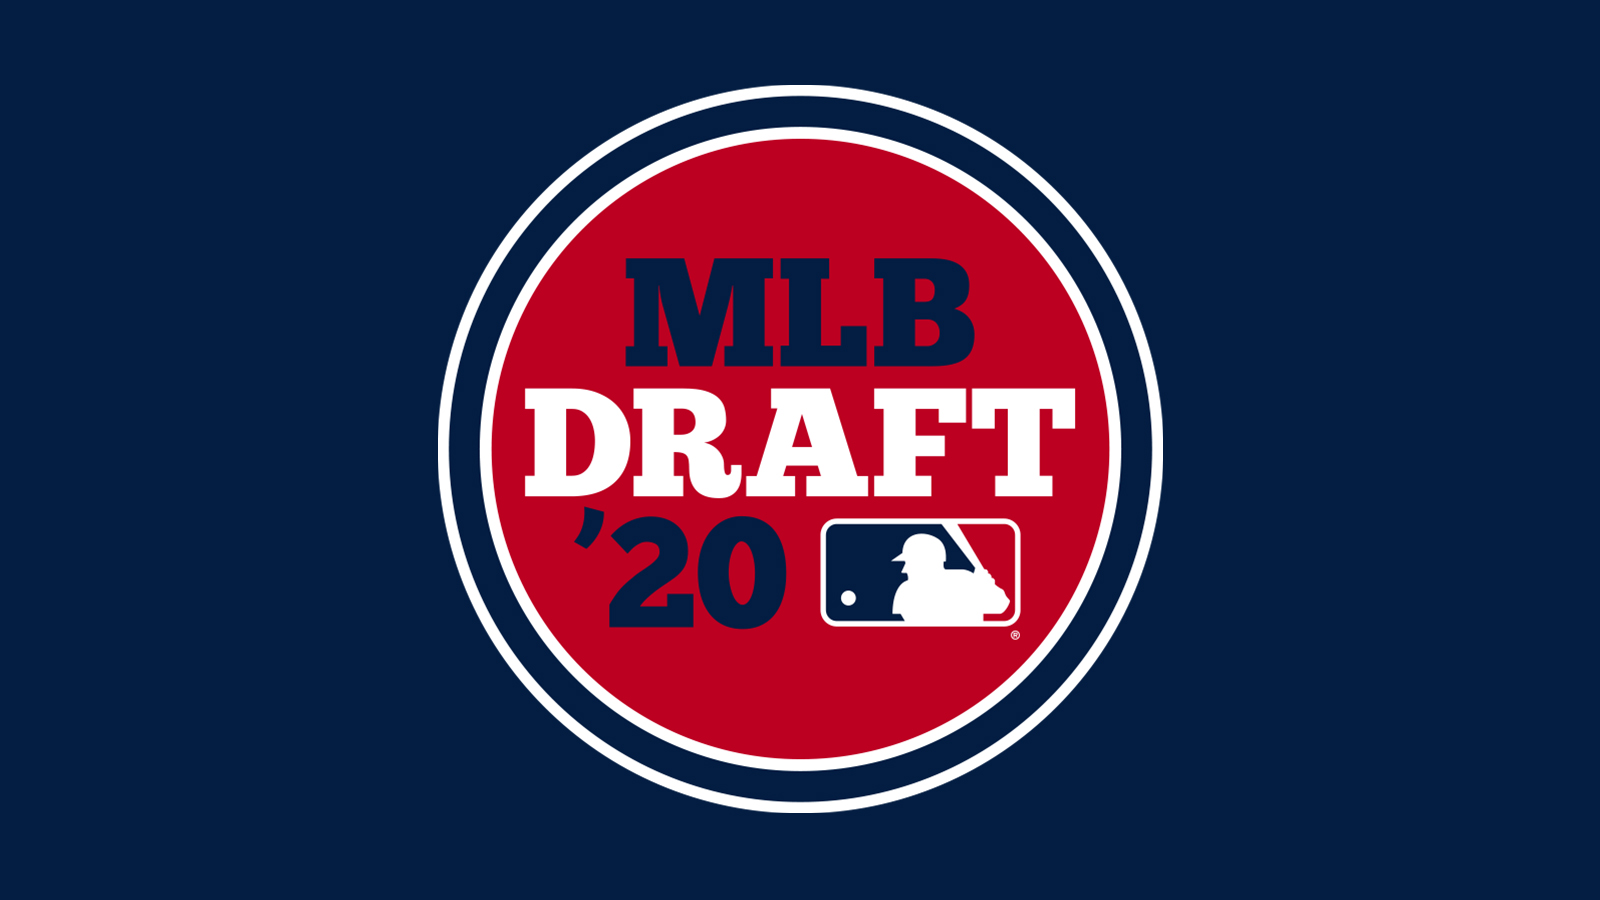 Photo of MLB Draft order 2020: Full list of picks for all 5 rounds & competitive balance selections